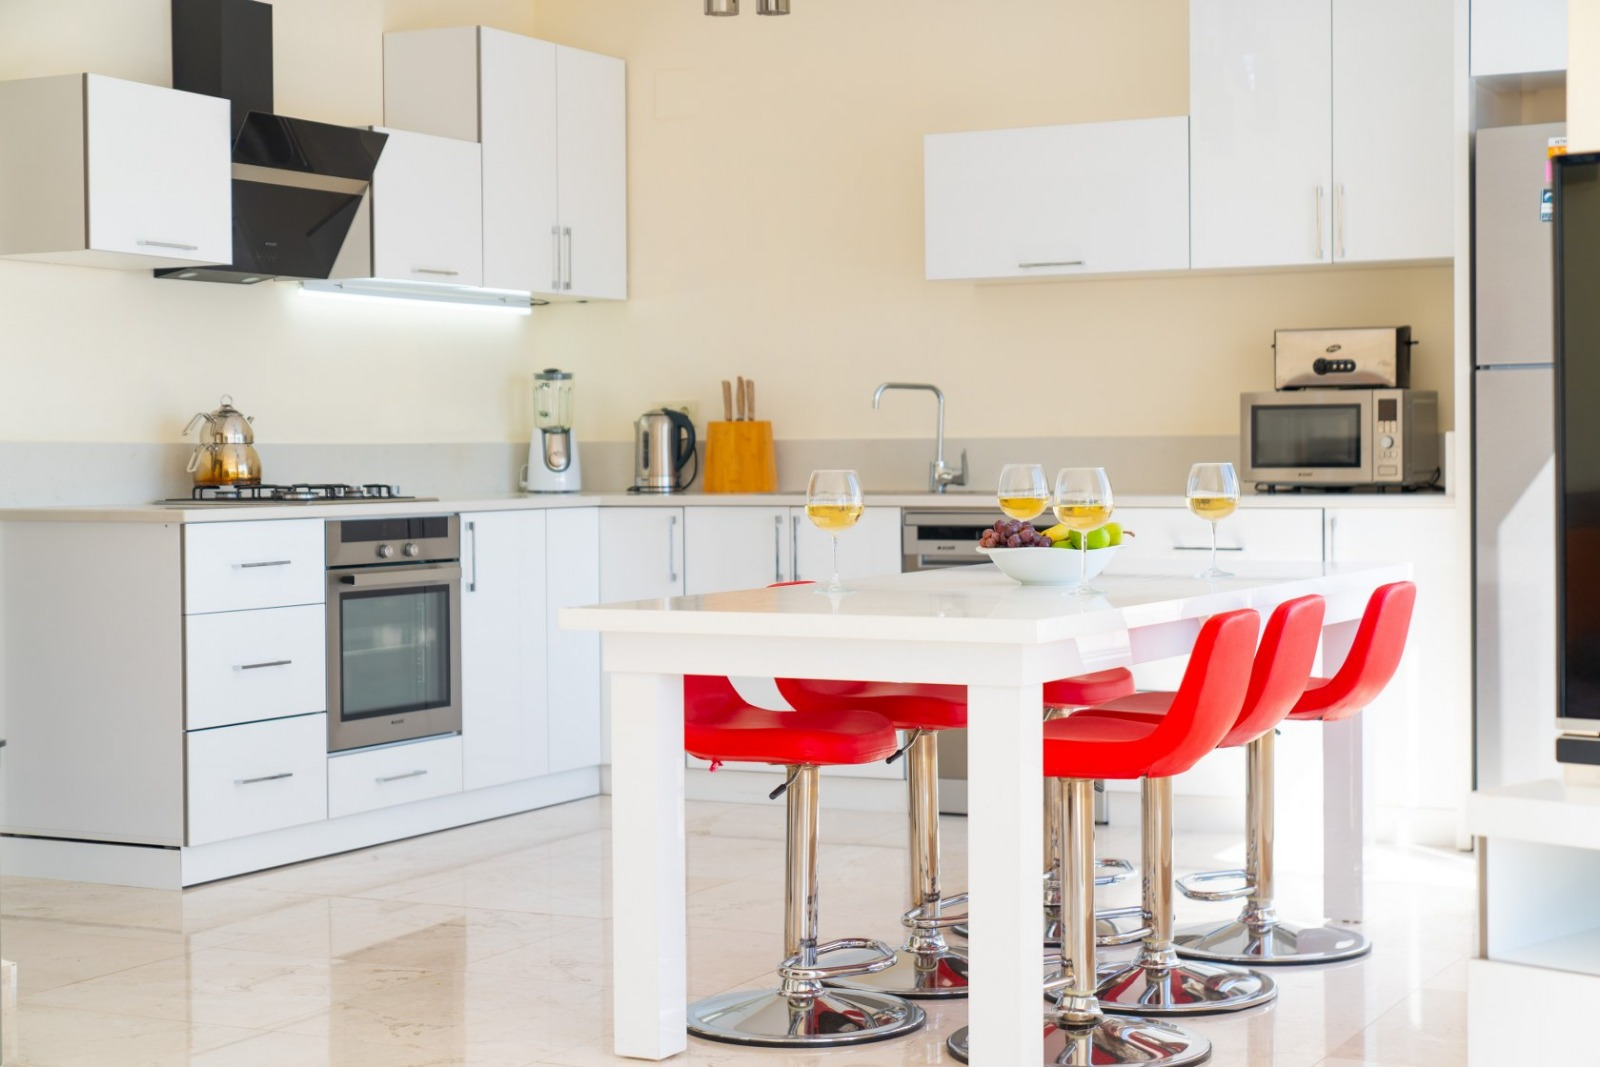 kitchen and red chairs